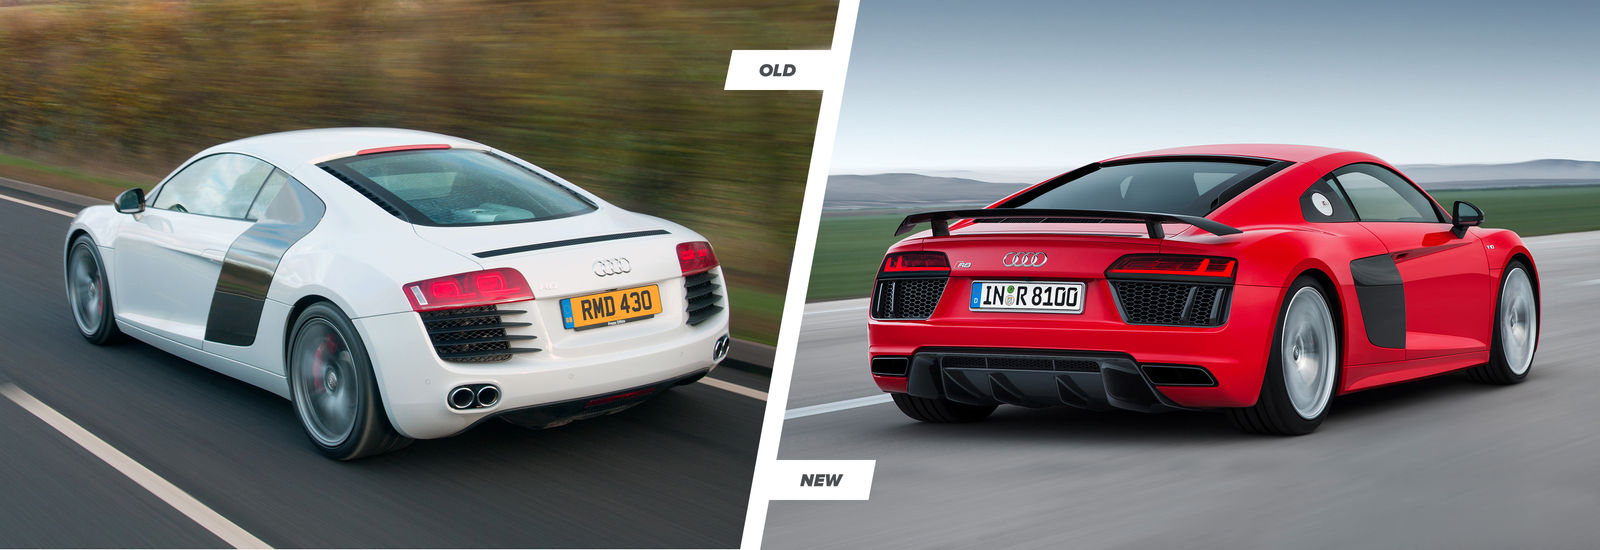 2015 Audi R8: TT and old R8 comparison | carwow